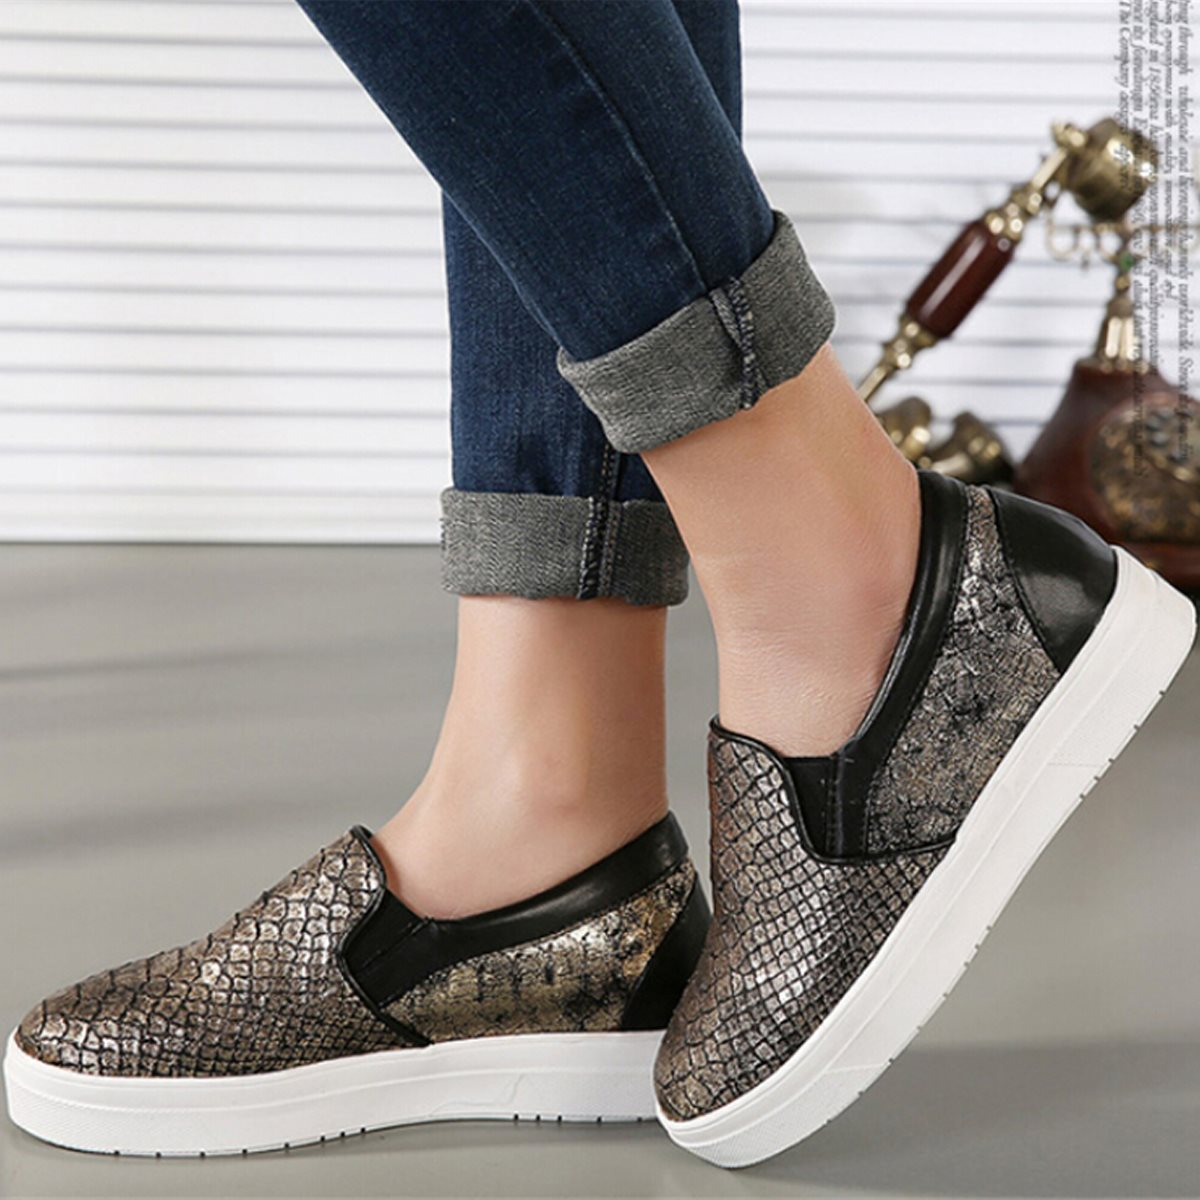 1a990c746611 Fashion Sparkly Slip-On Round Toe Lady Flat Shoe Summer Korean Style Solid  Color Soft Leather Trendy Women Shoe Sizes 35-39